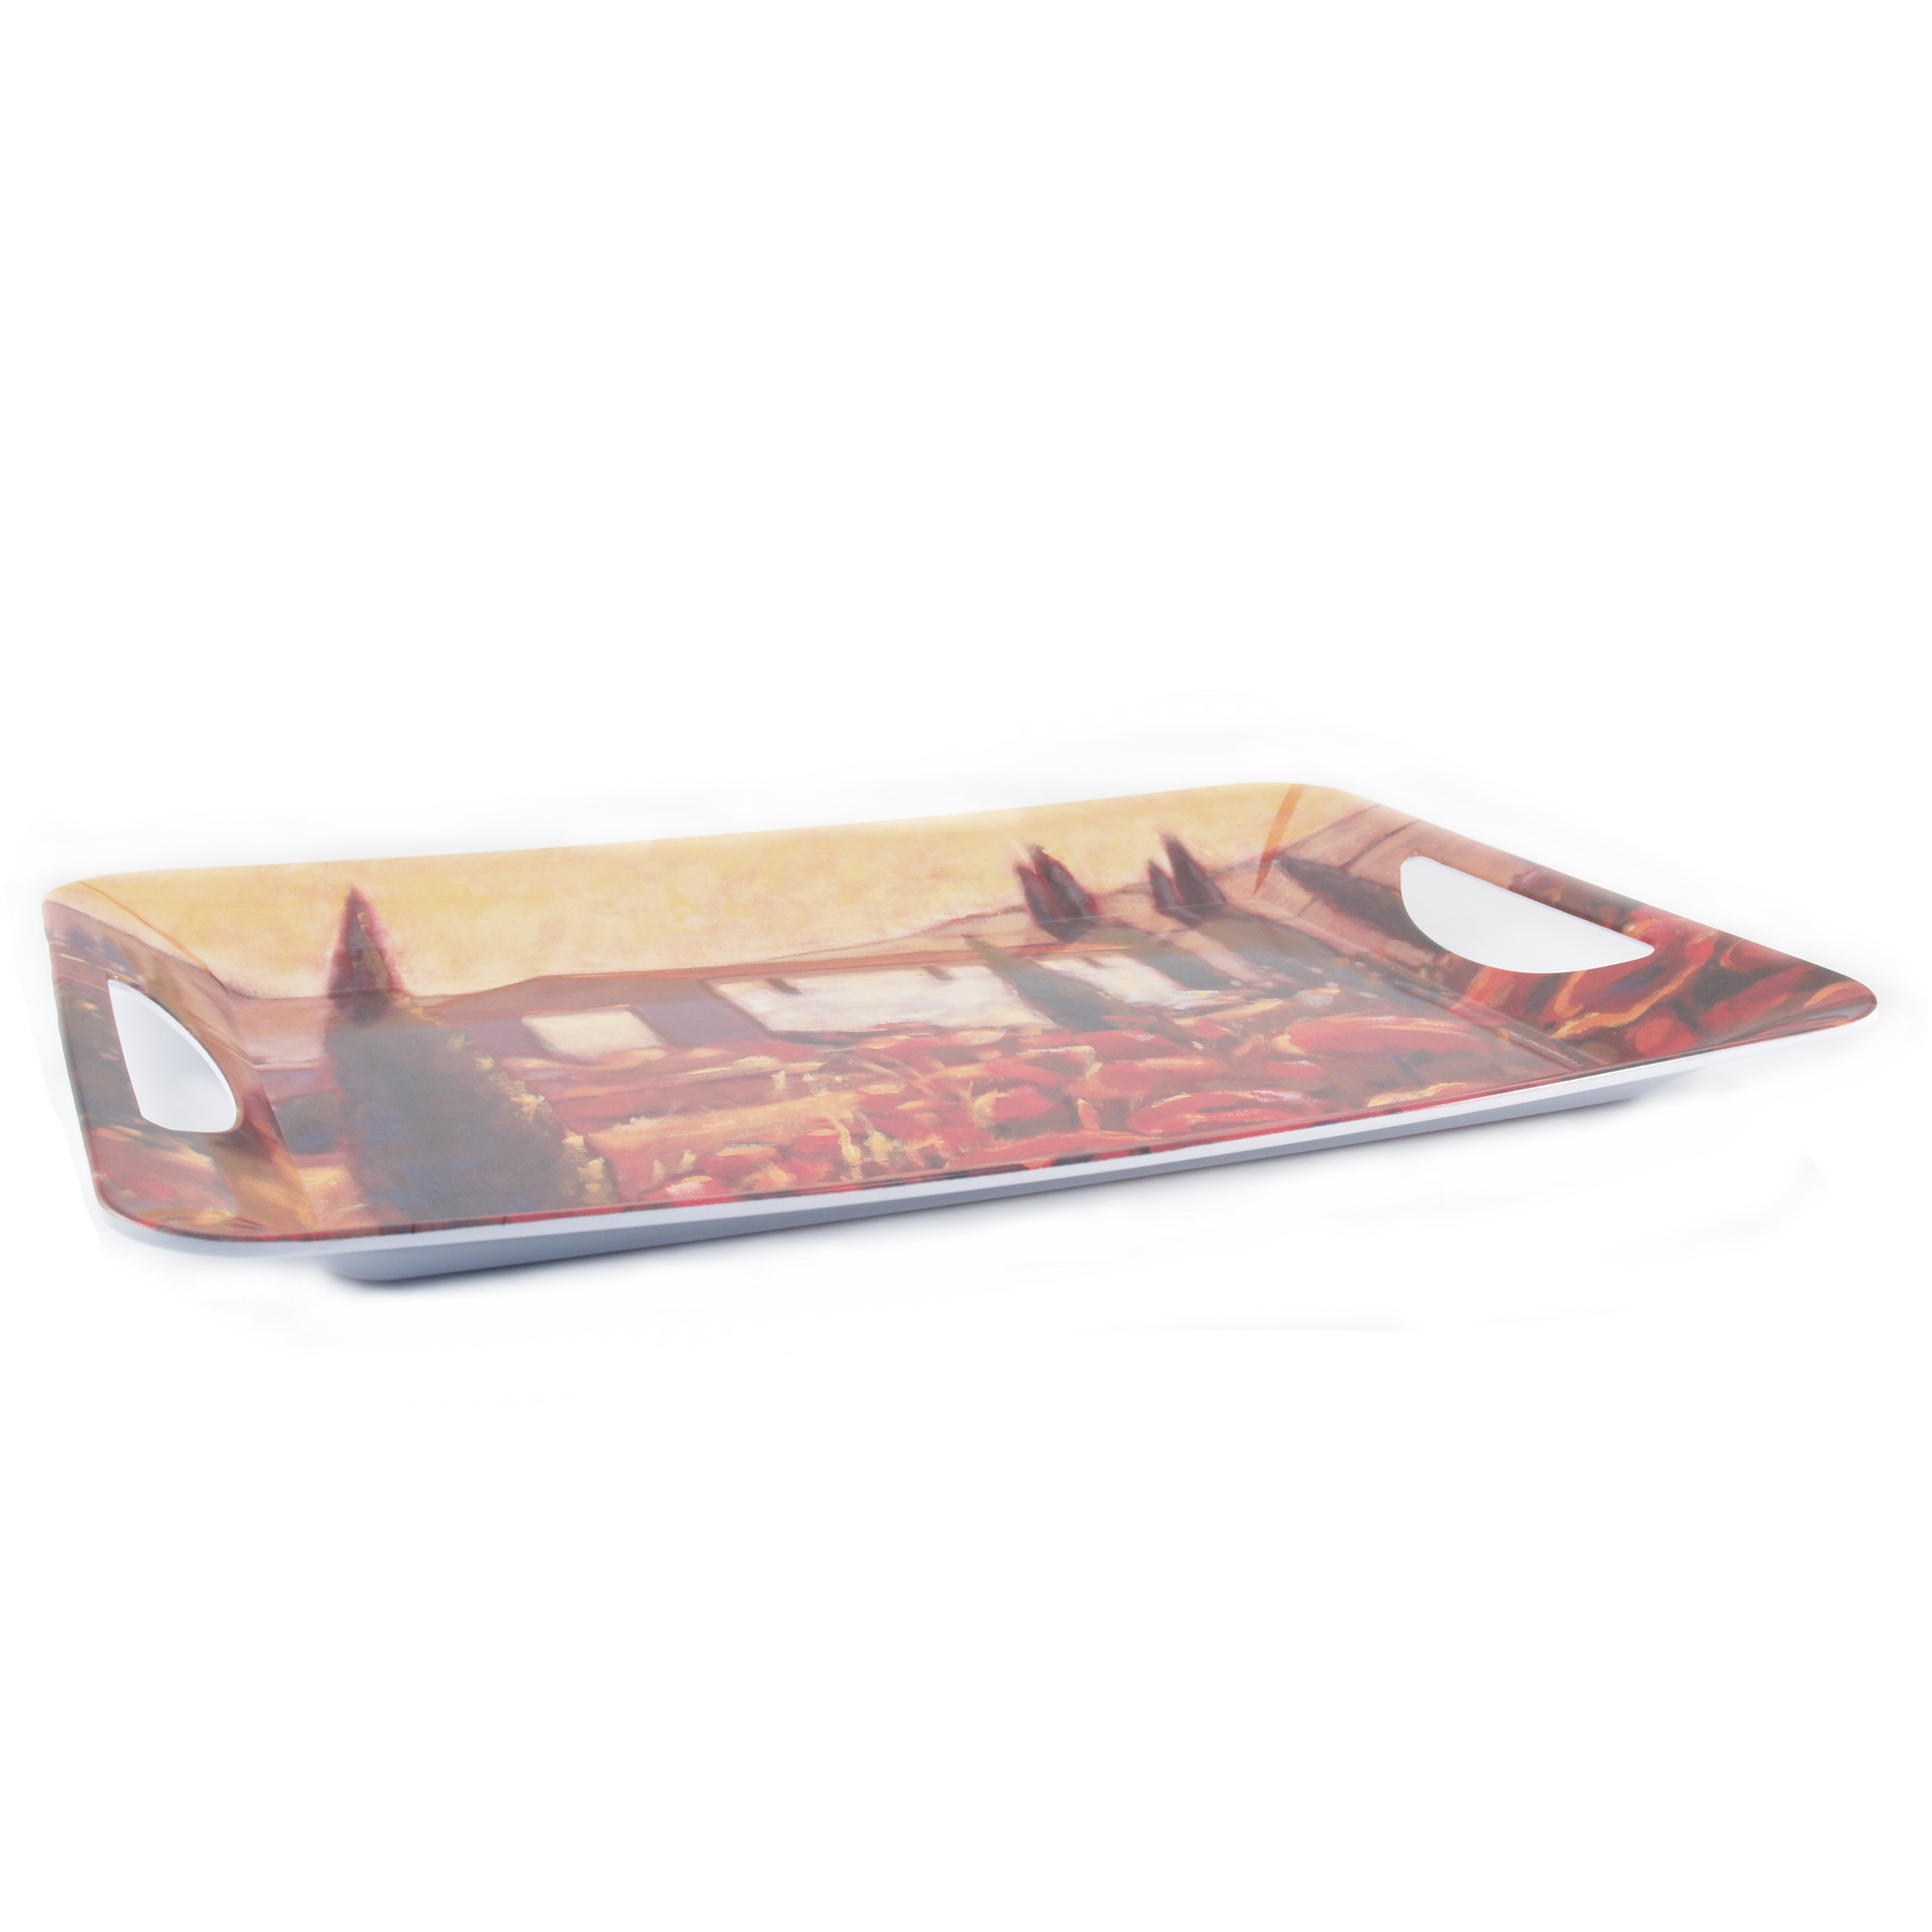 L'Allegria Italiano Large Melamine Luxury Serving Tray